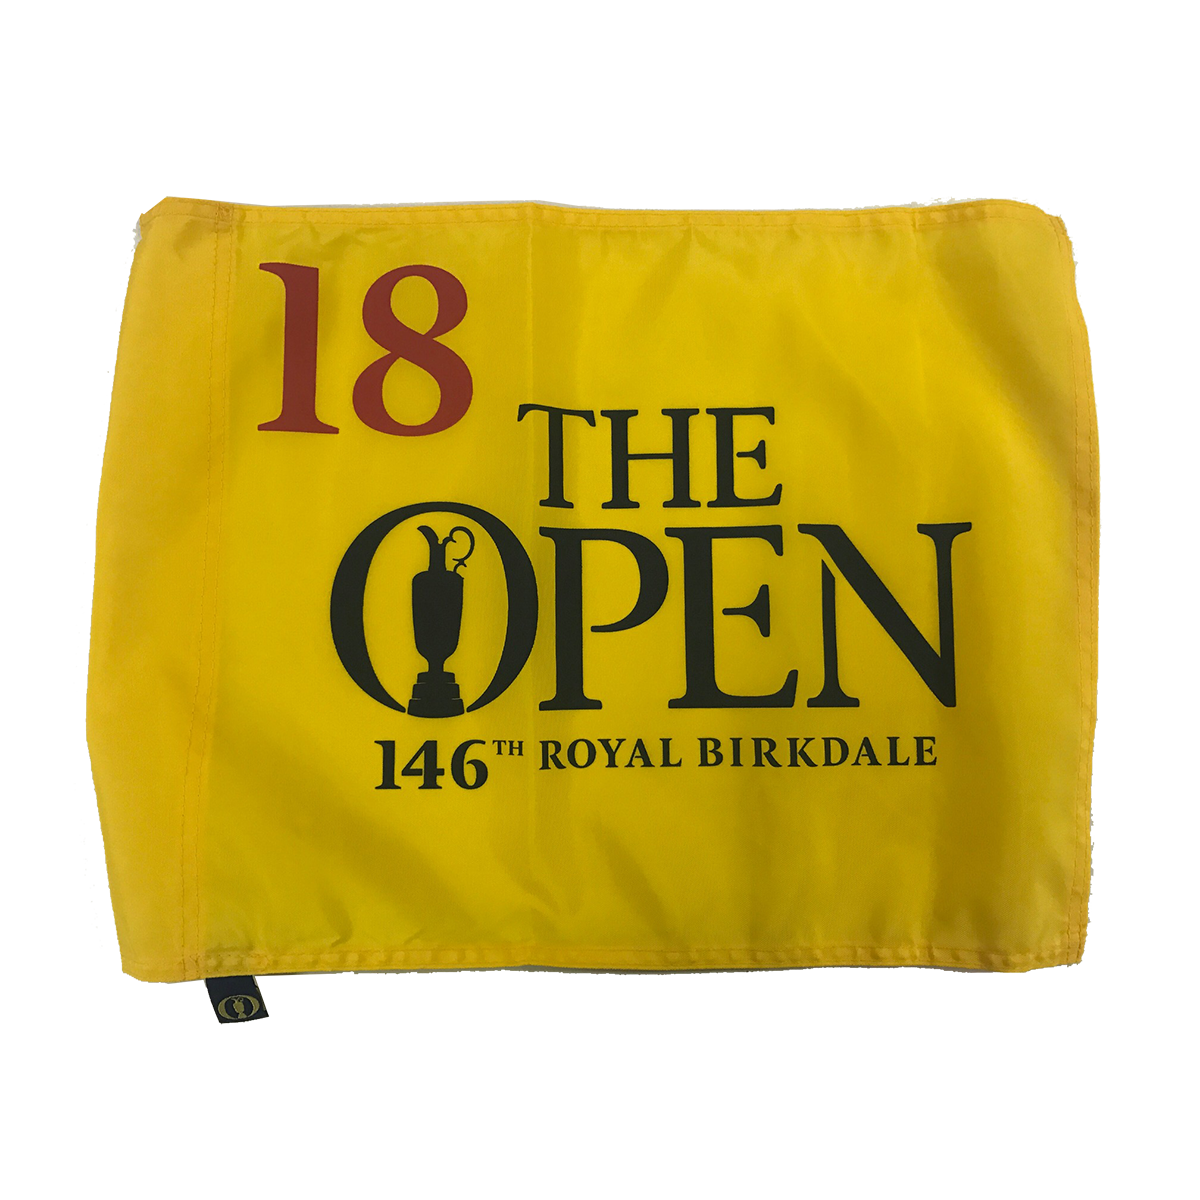 British Open Merchandise